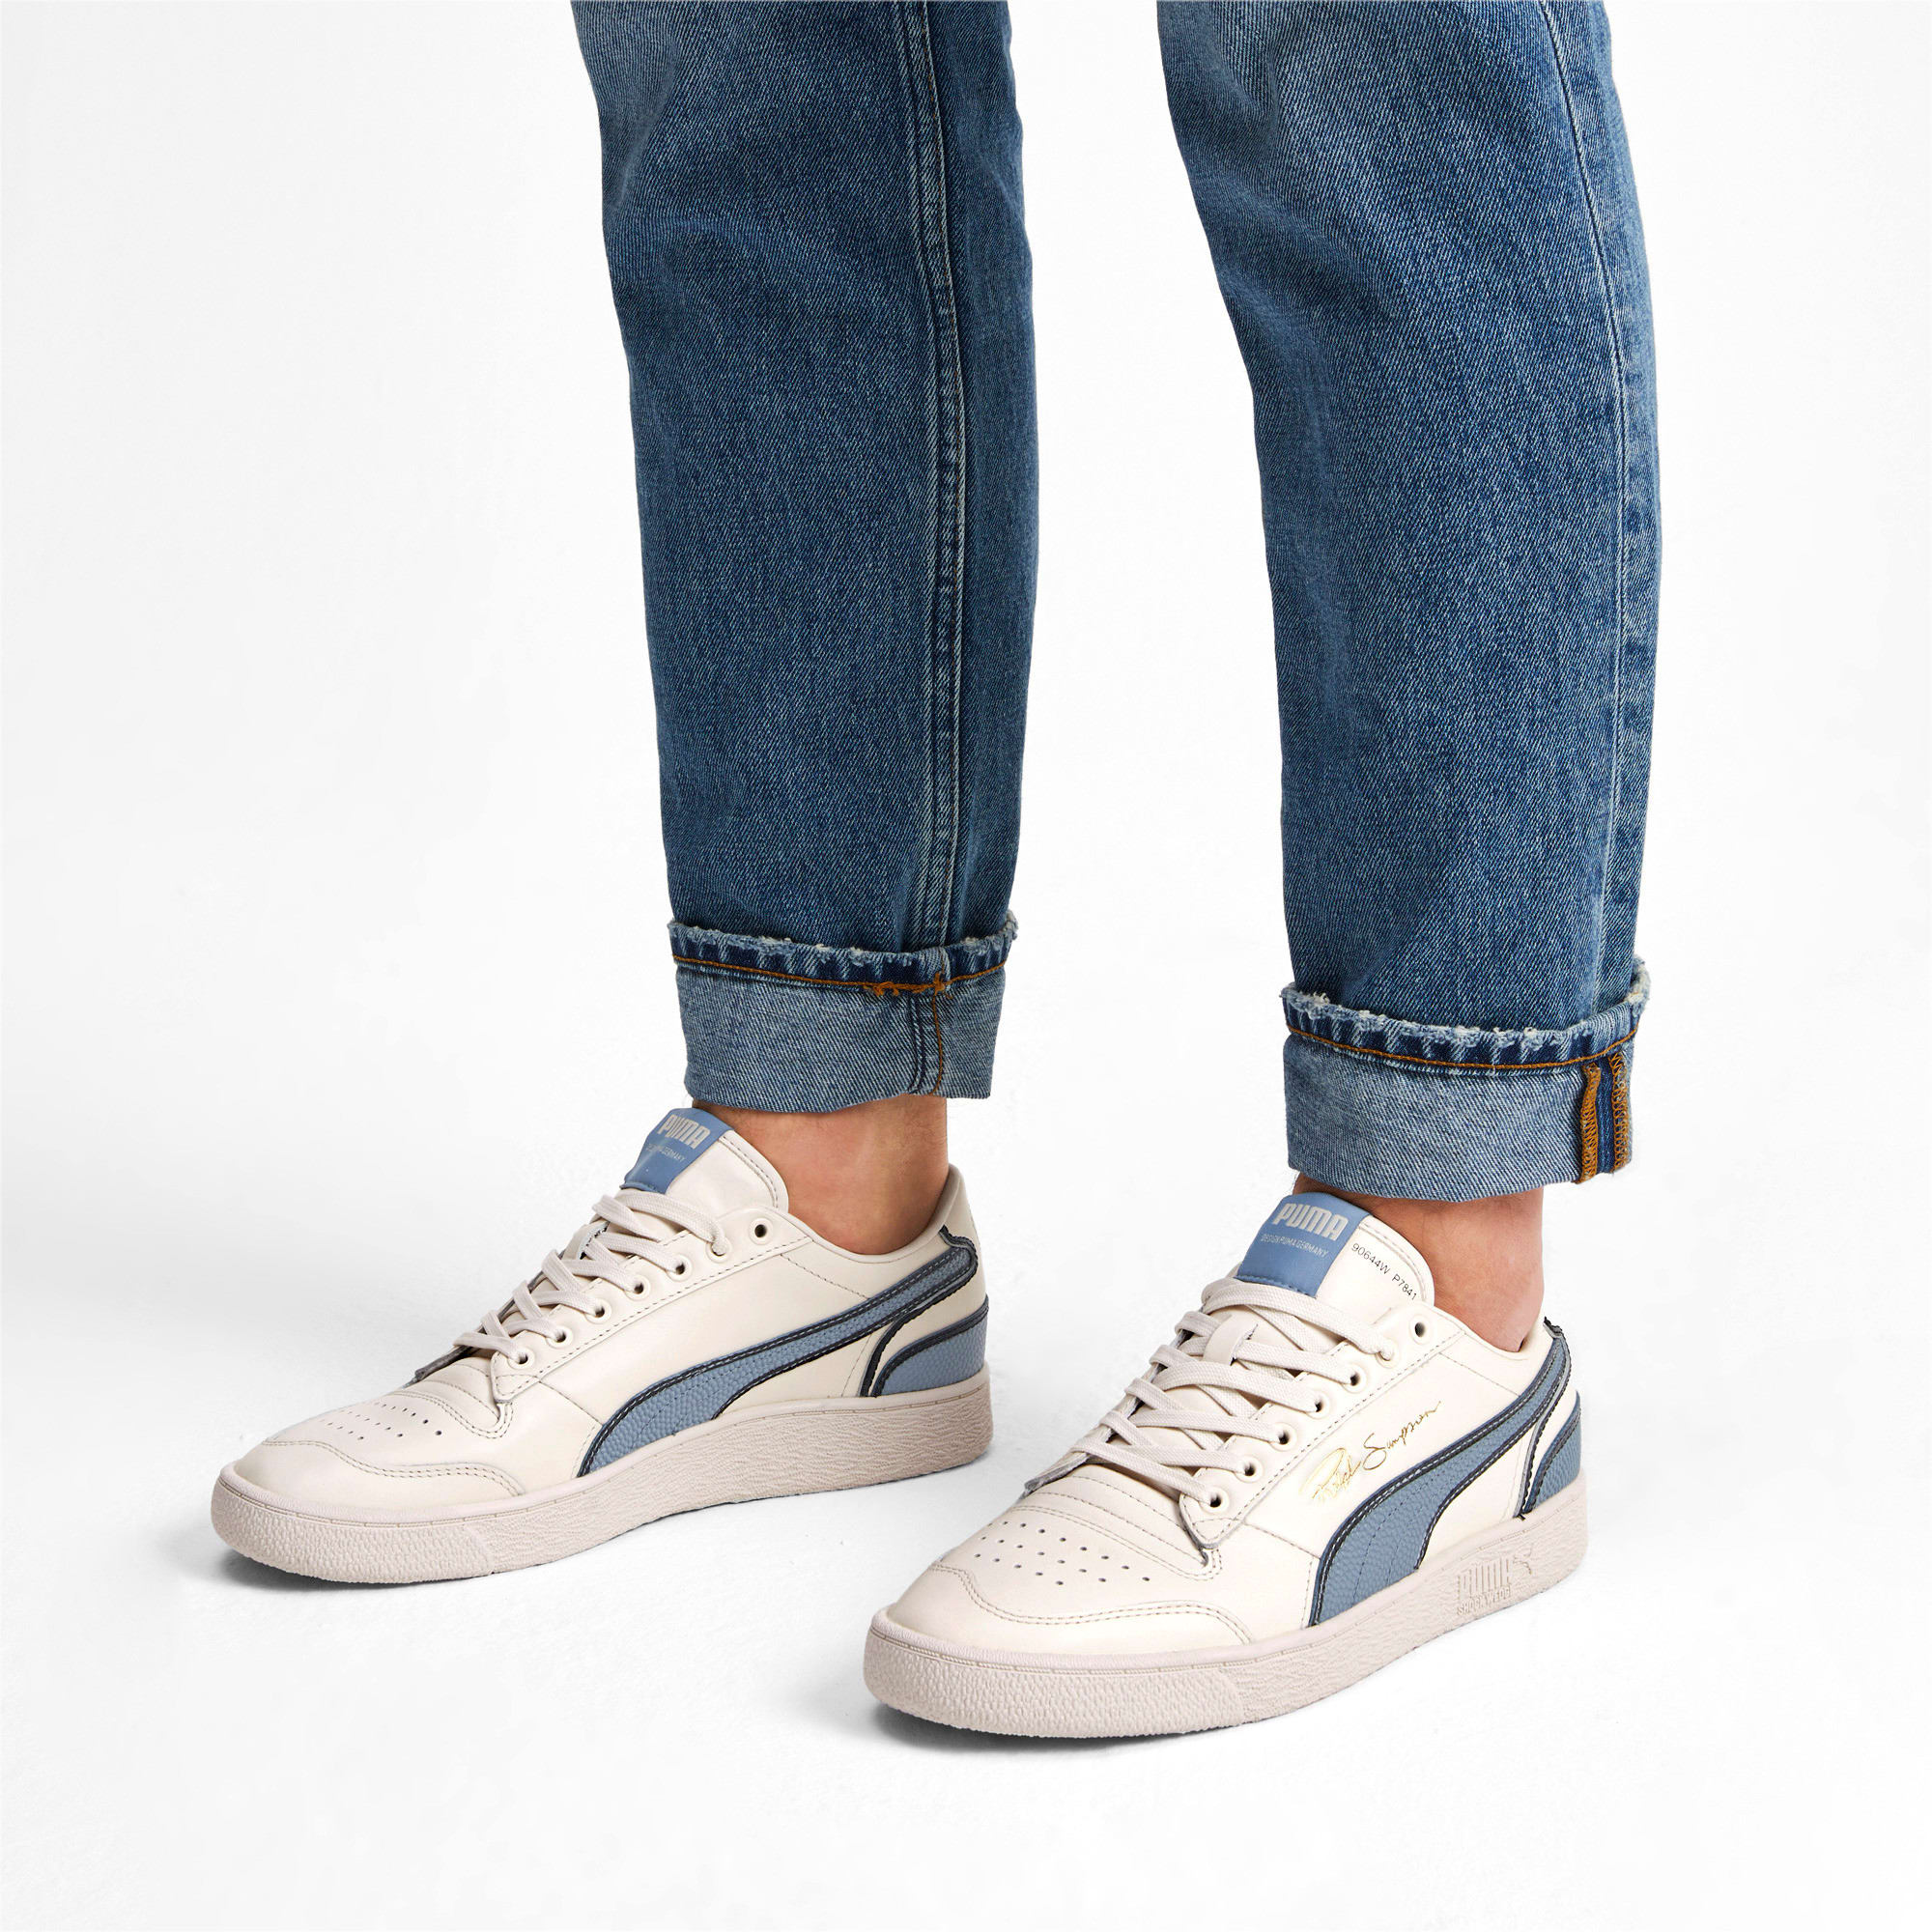 Thumbnail 2 of Ralph Sampson Lo Hoops Sneakers, Pastel-Faded Denim-Pastel, medium